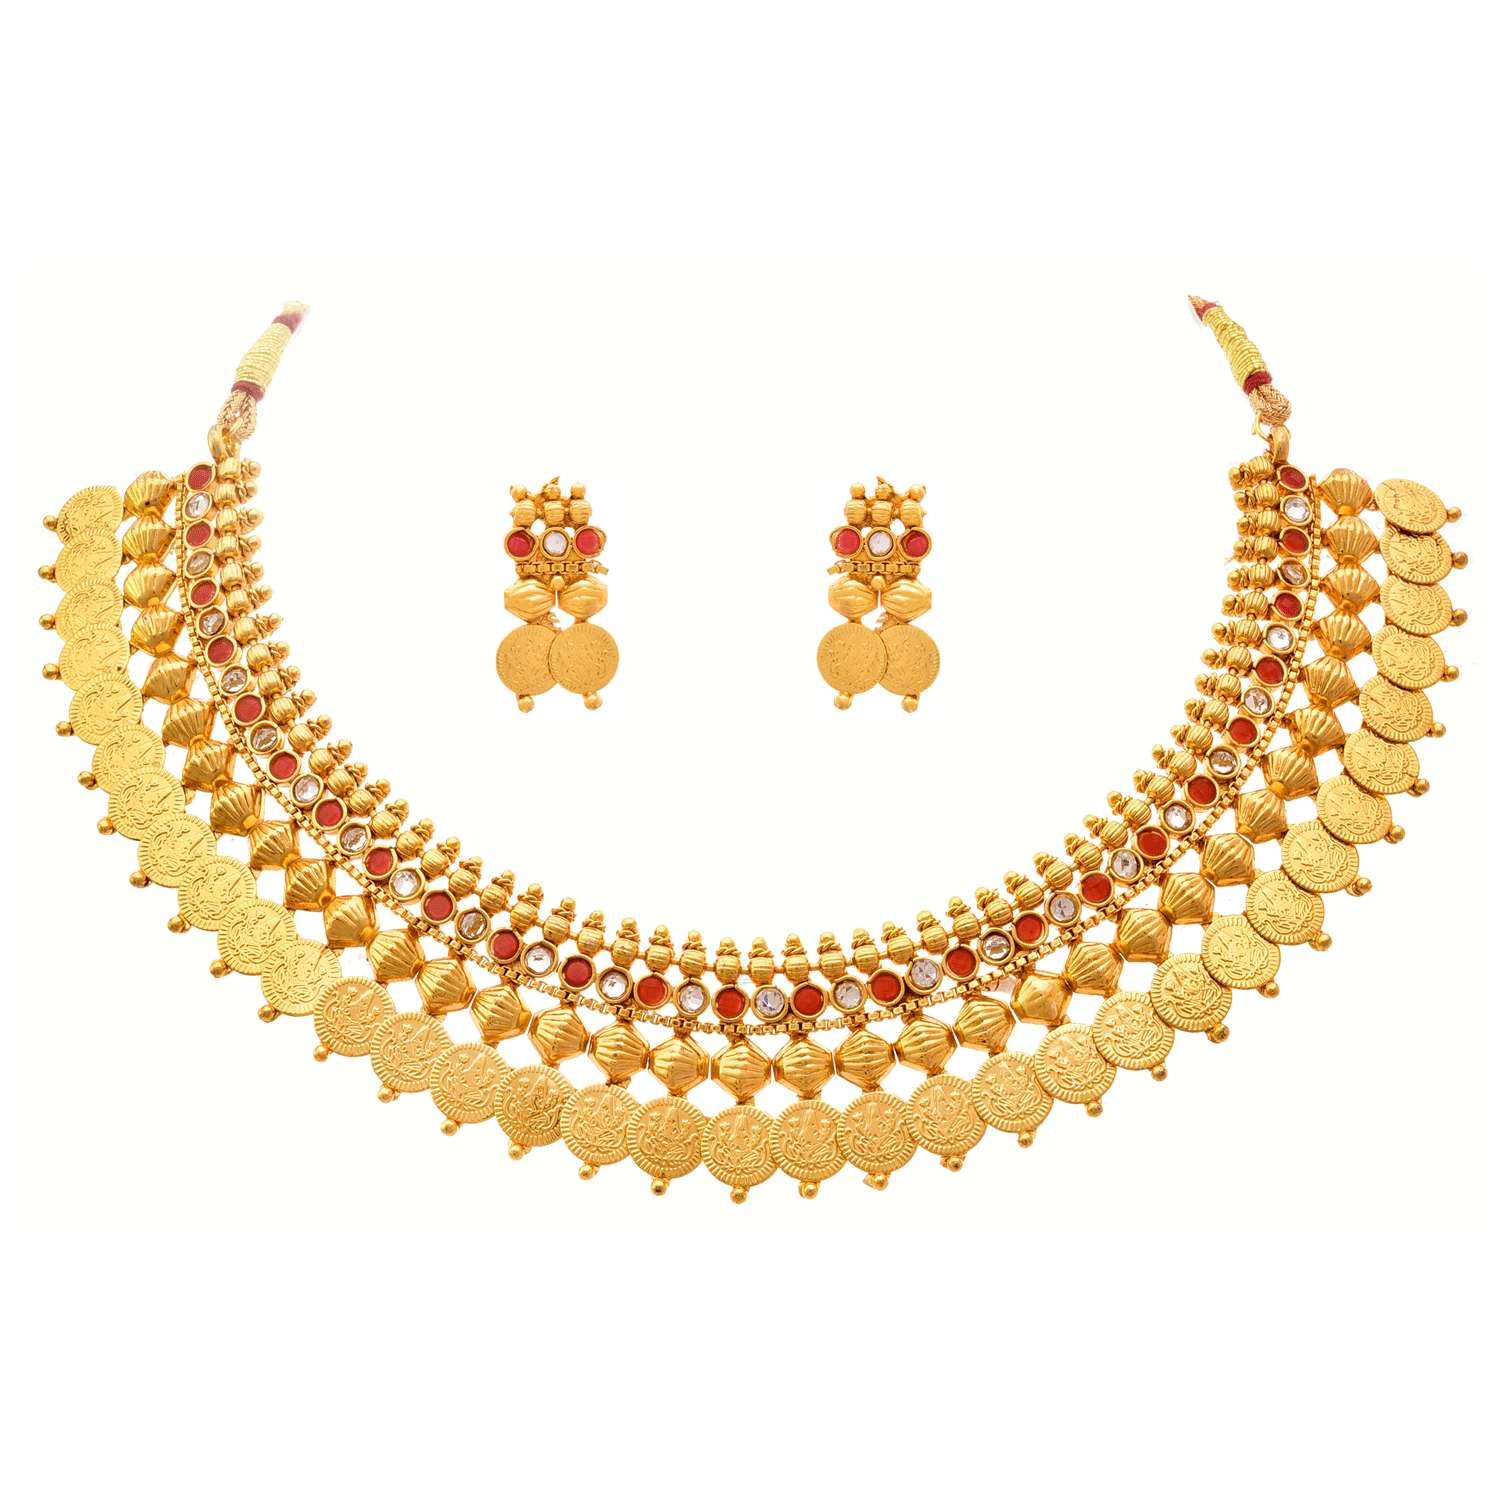 JFL - Jewellery For Less Goddess Laxmi One Gram Gold Plated Coin Necklace Set / Jewellery Set Studded With Red Stones & Polki For Girls & Women